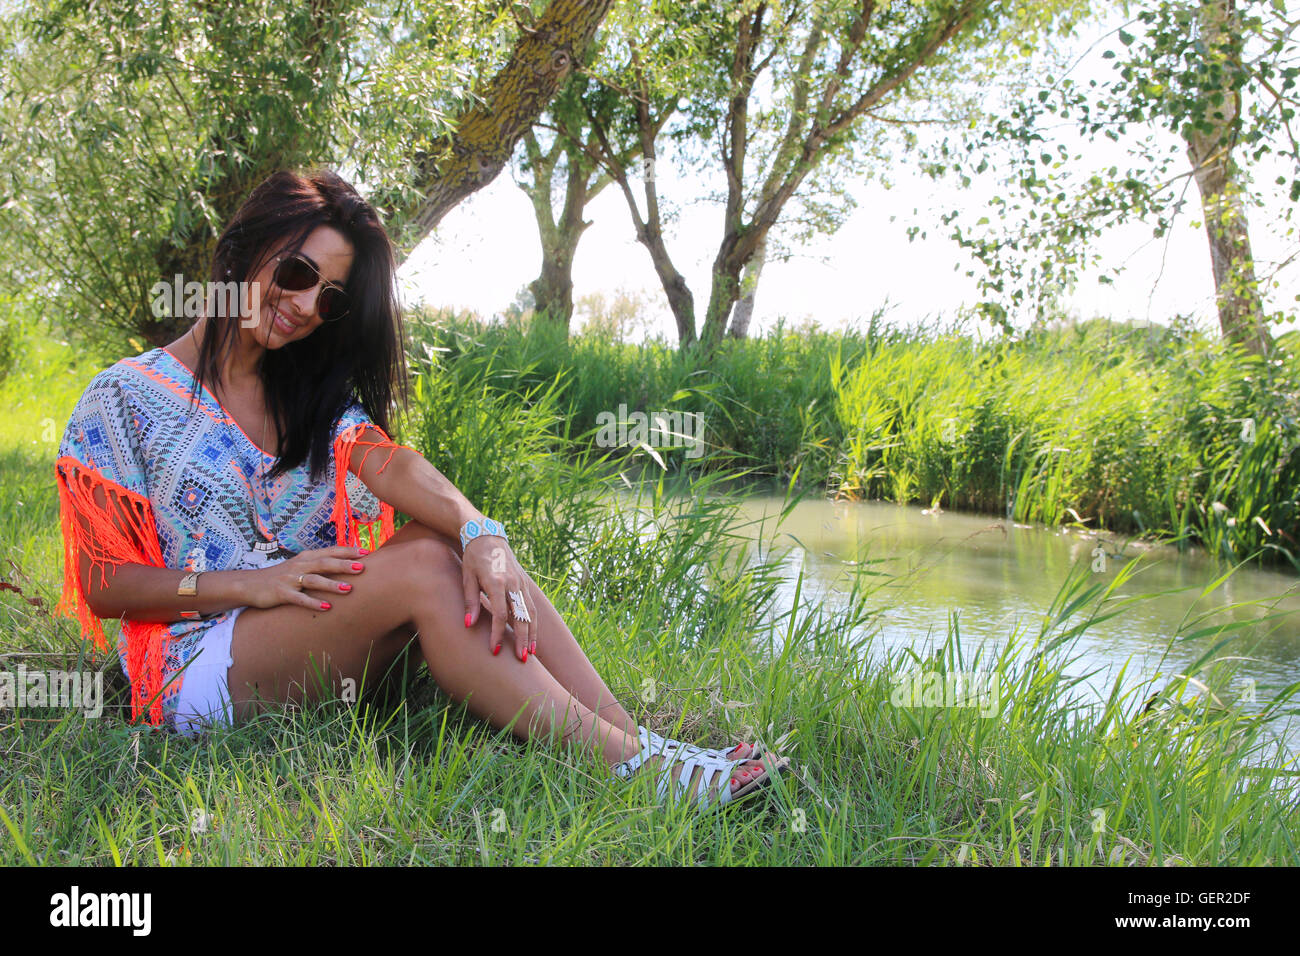 Beautiful woman wearing a tunic next to a river - Stock Image